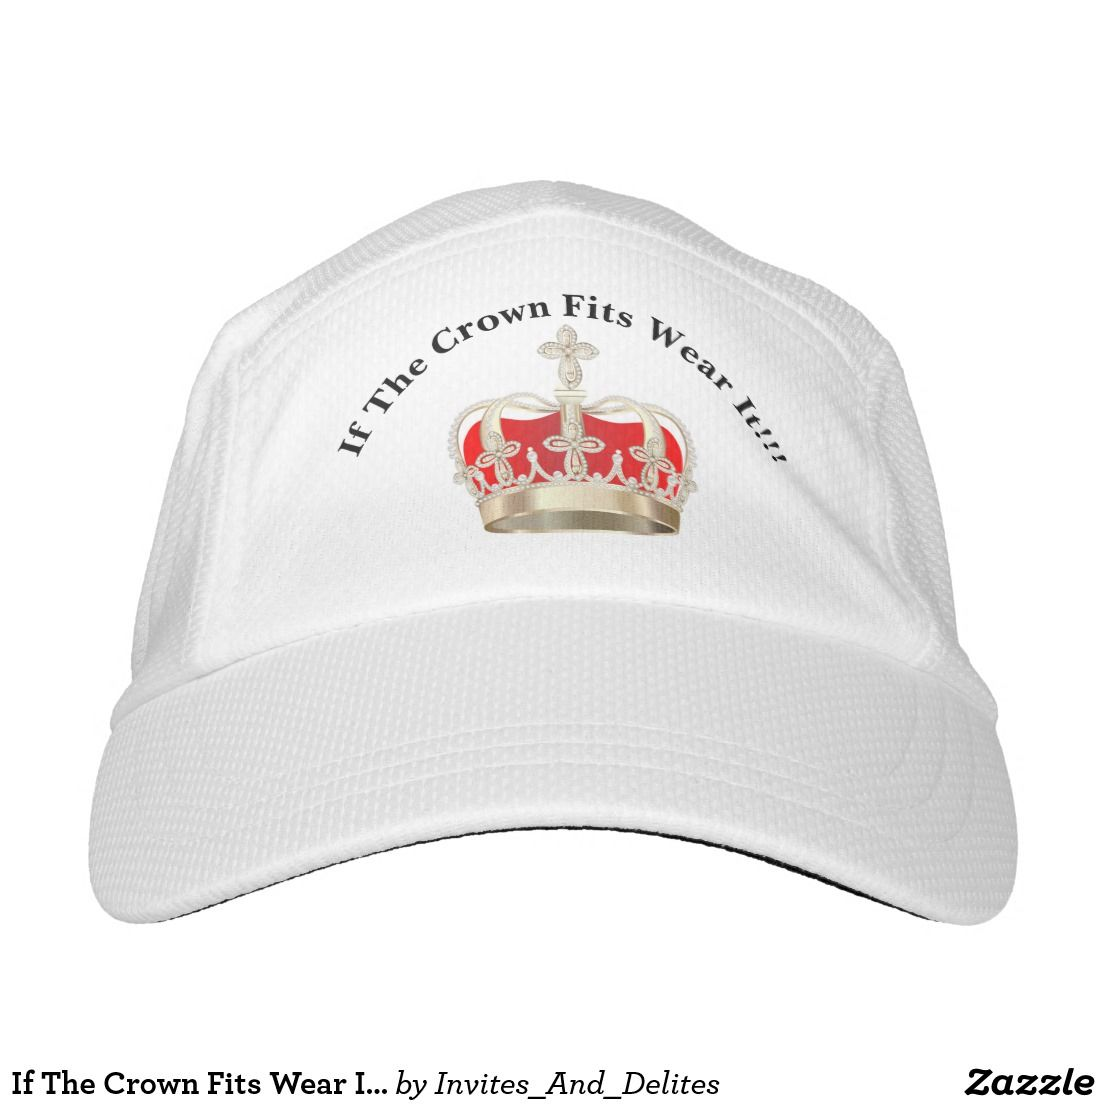 ae4948b489a If The Crown Fits Wear It White Cap